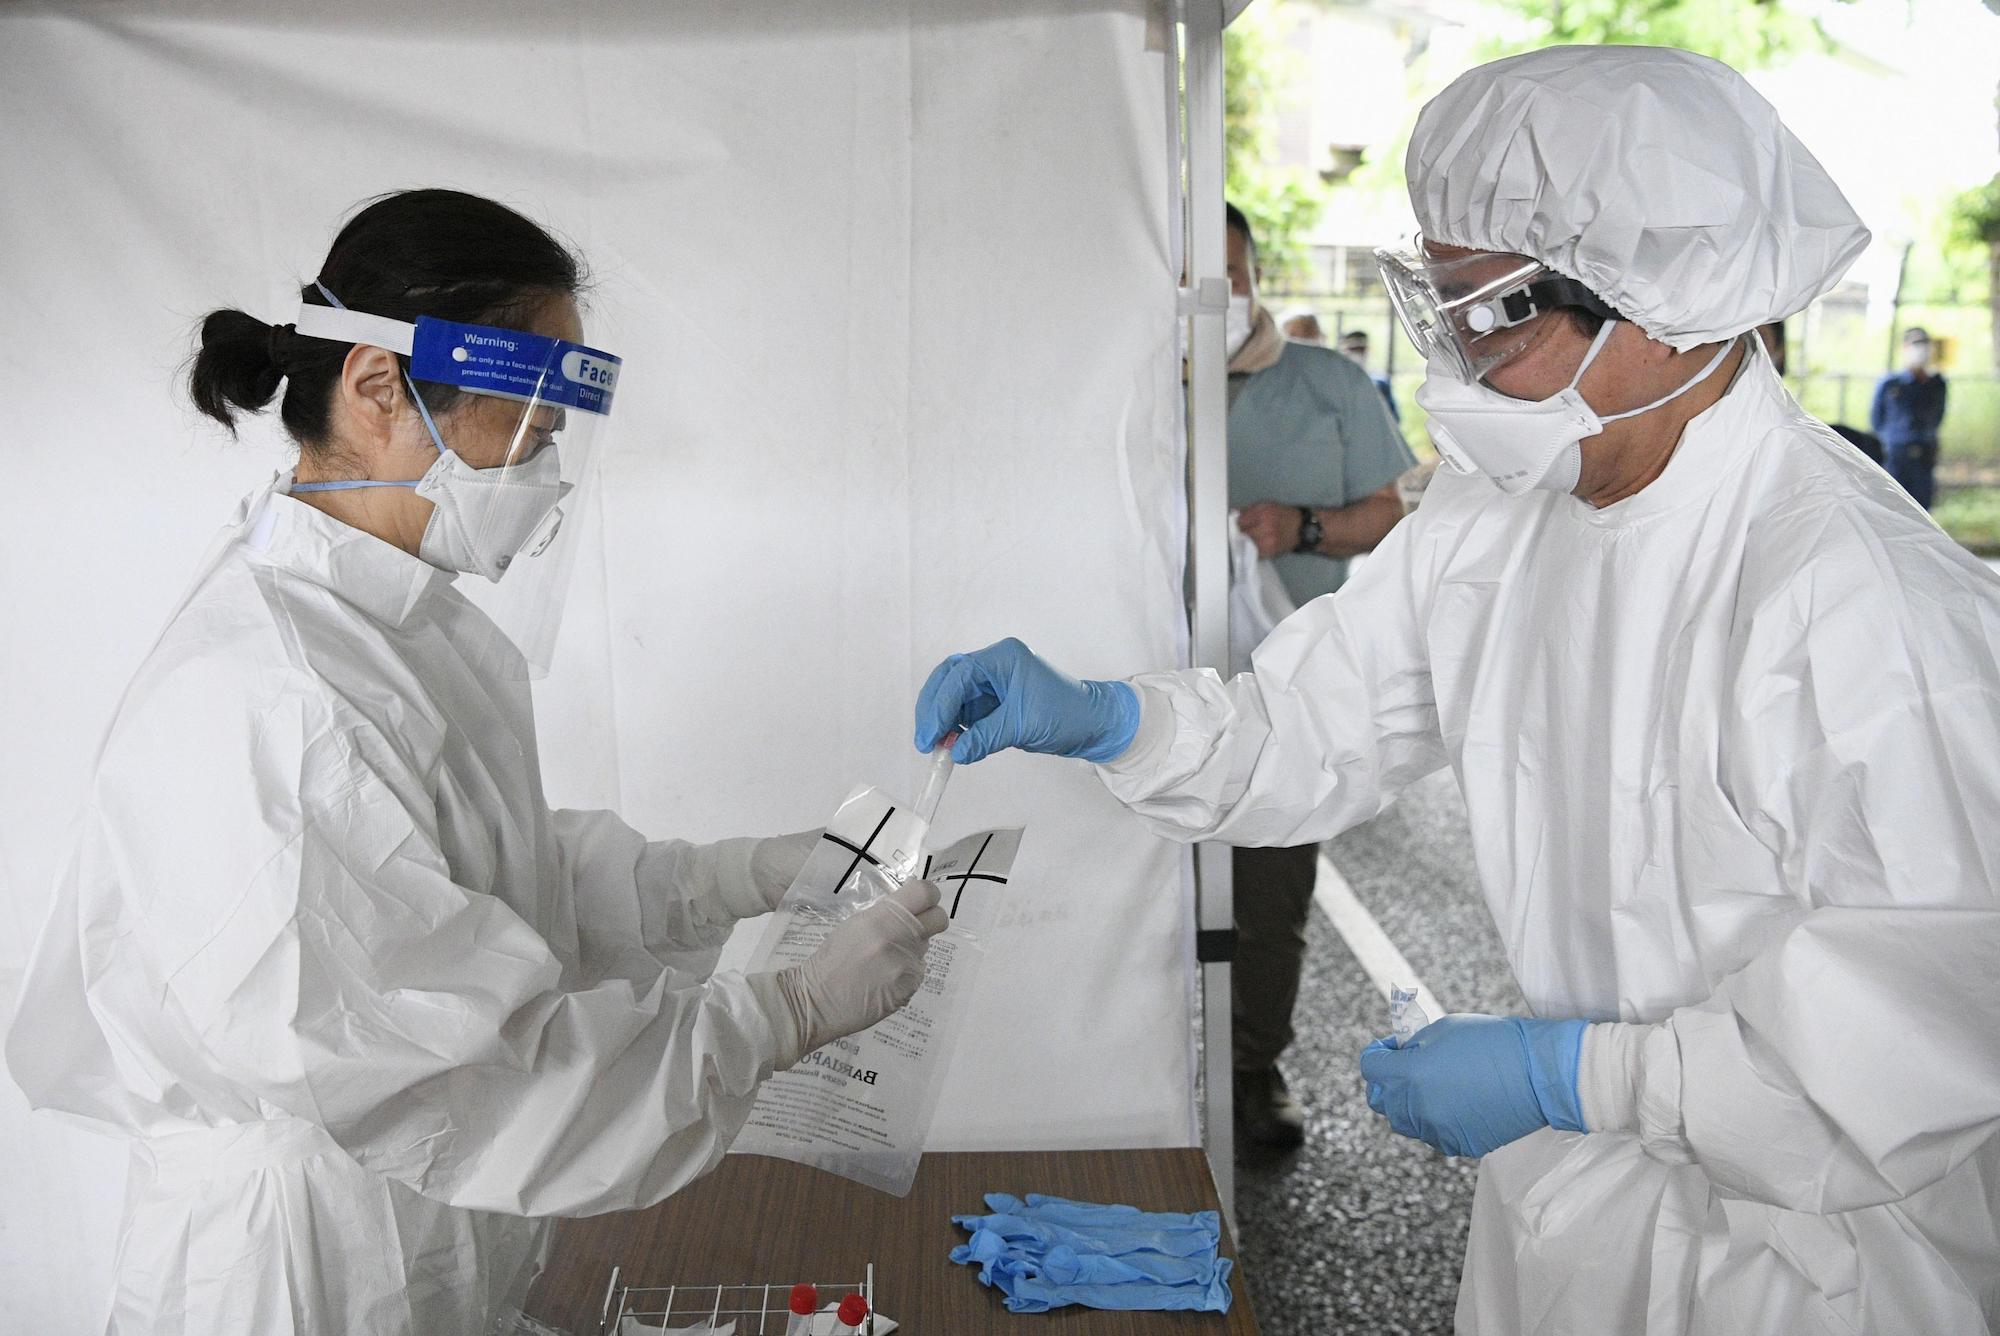 Medical workers practice processing a polymerase chain reaction (PCR) test at a drive-thru facility in Chofu in western Tokyo on May 20. | KYODO